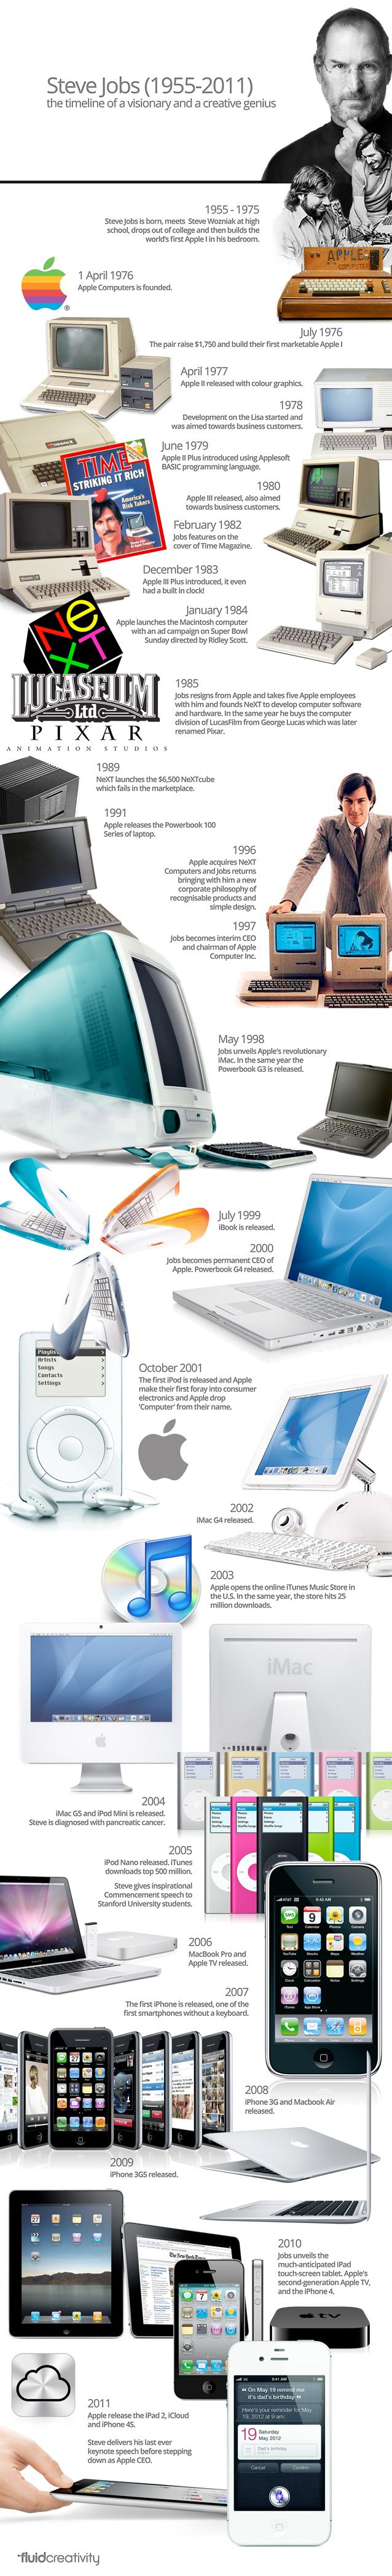 Steve Jobs (1955-2011). The Timeline of a visionary and a creative genius